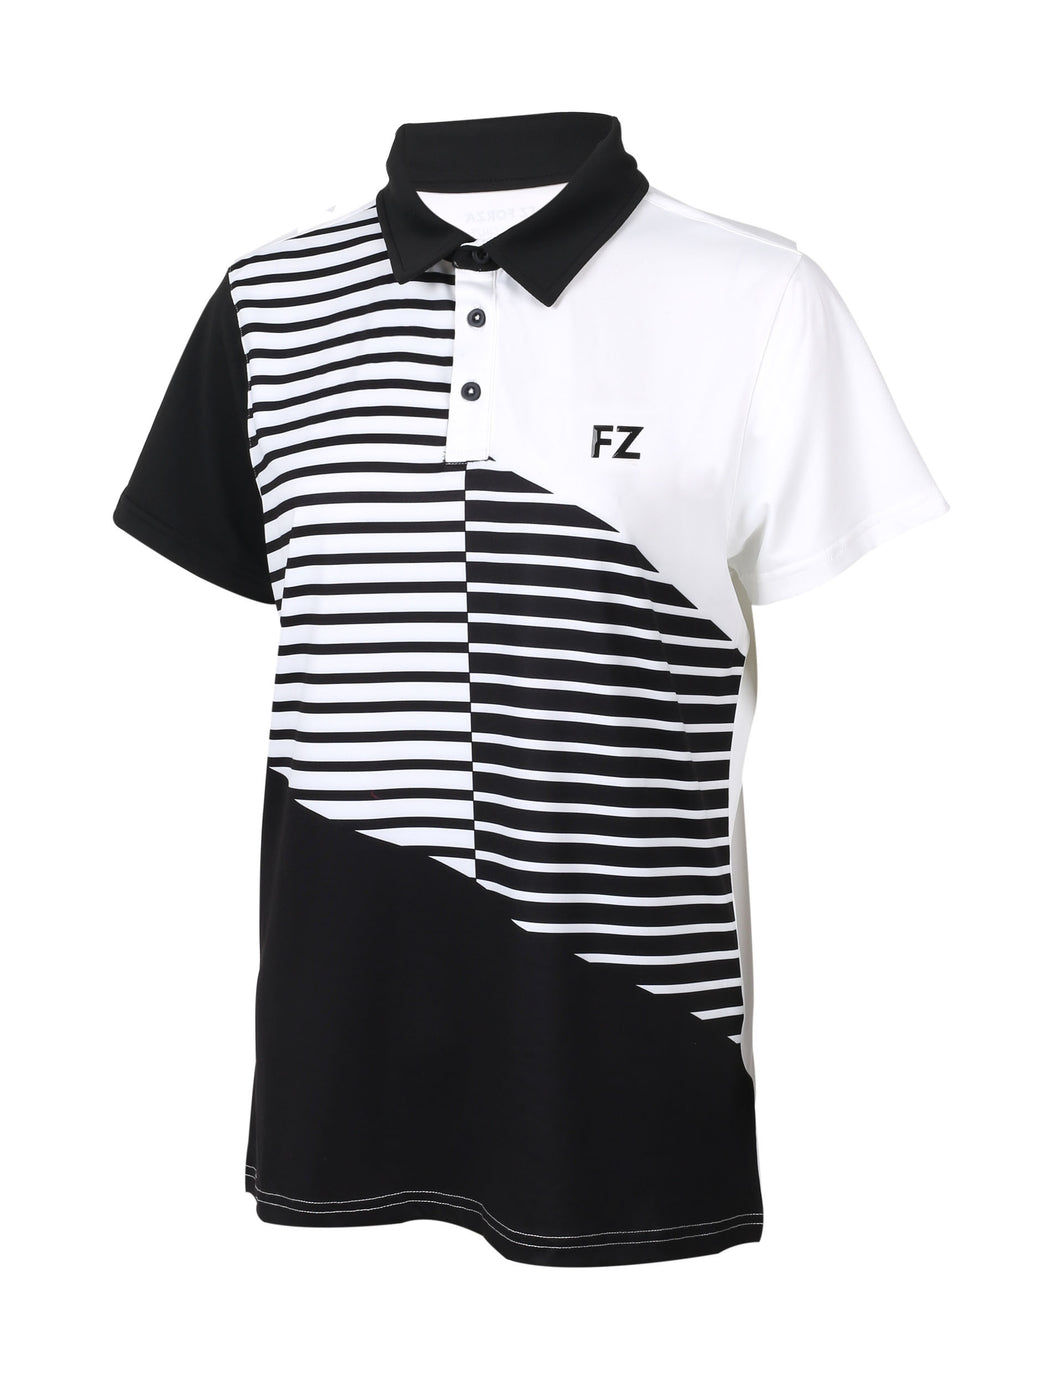 FORZA BOULDY POLO T-SHIRT COLLAB (BLACK)